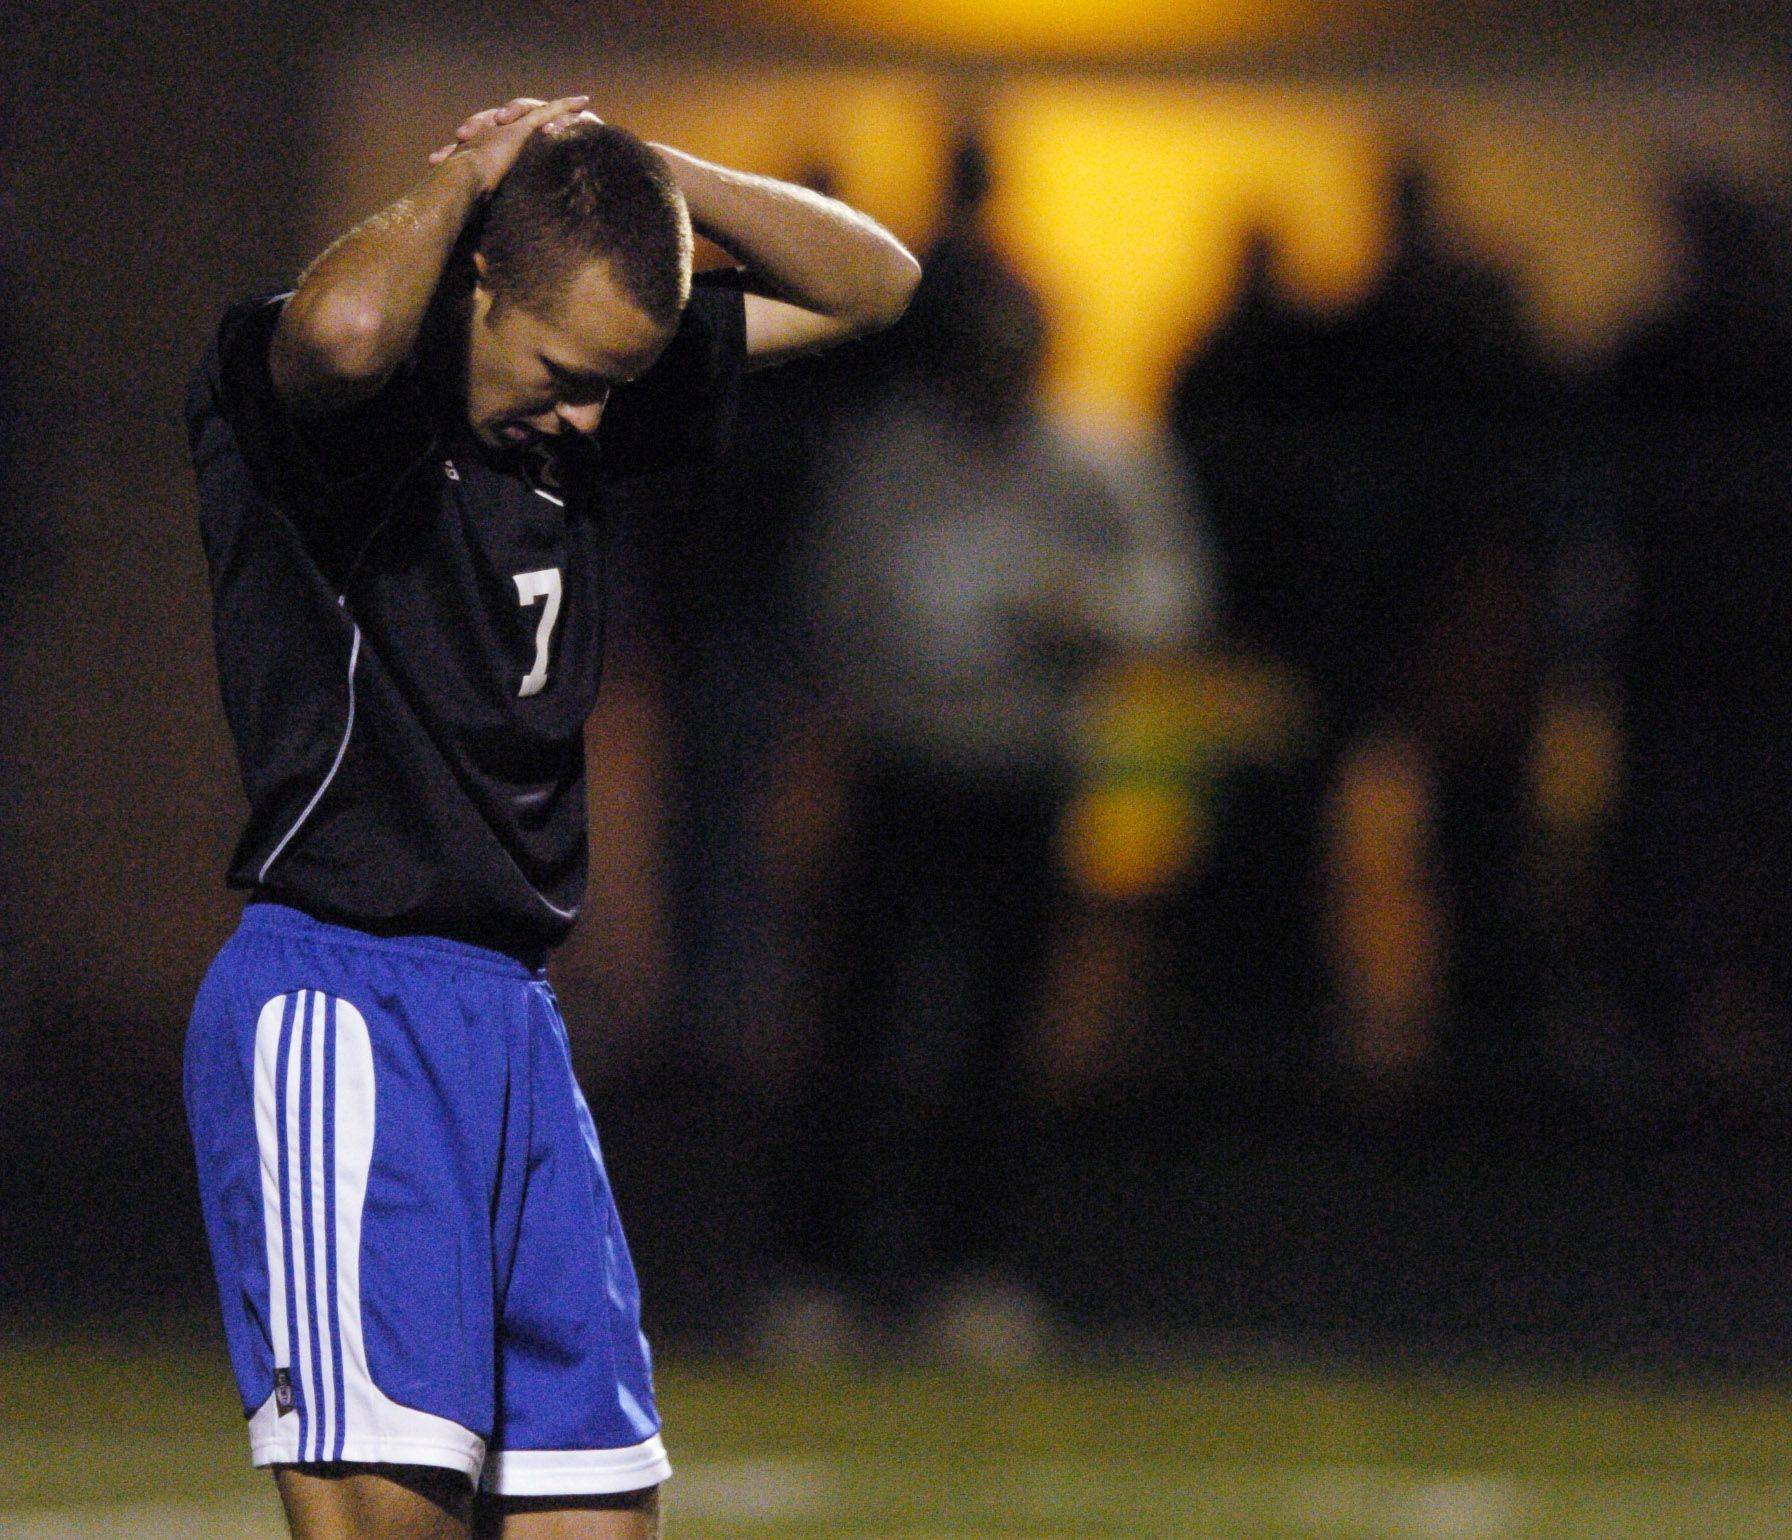 Joshua Poythress of Geneva reacts to missing a shot during the double shoot out with Leyden during the boys soccer semifinals at Schaumburg.